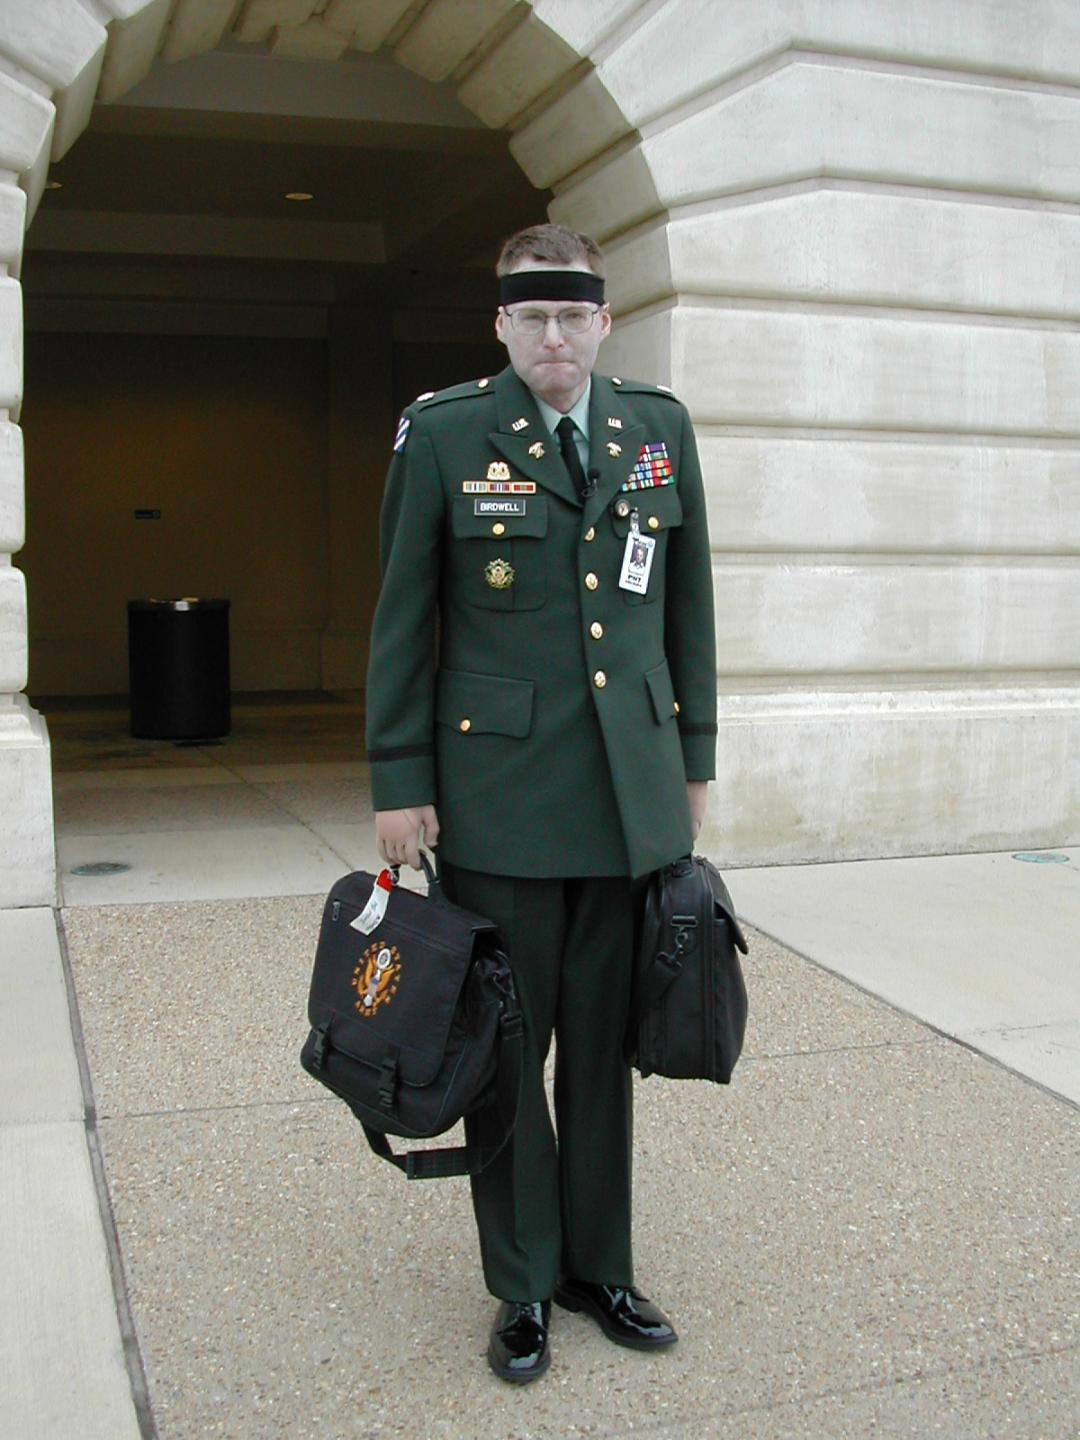 Birdwell testified before Congress about his experience on March 31, 2003, which was included in the 9/11 Commission report.